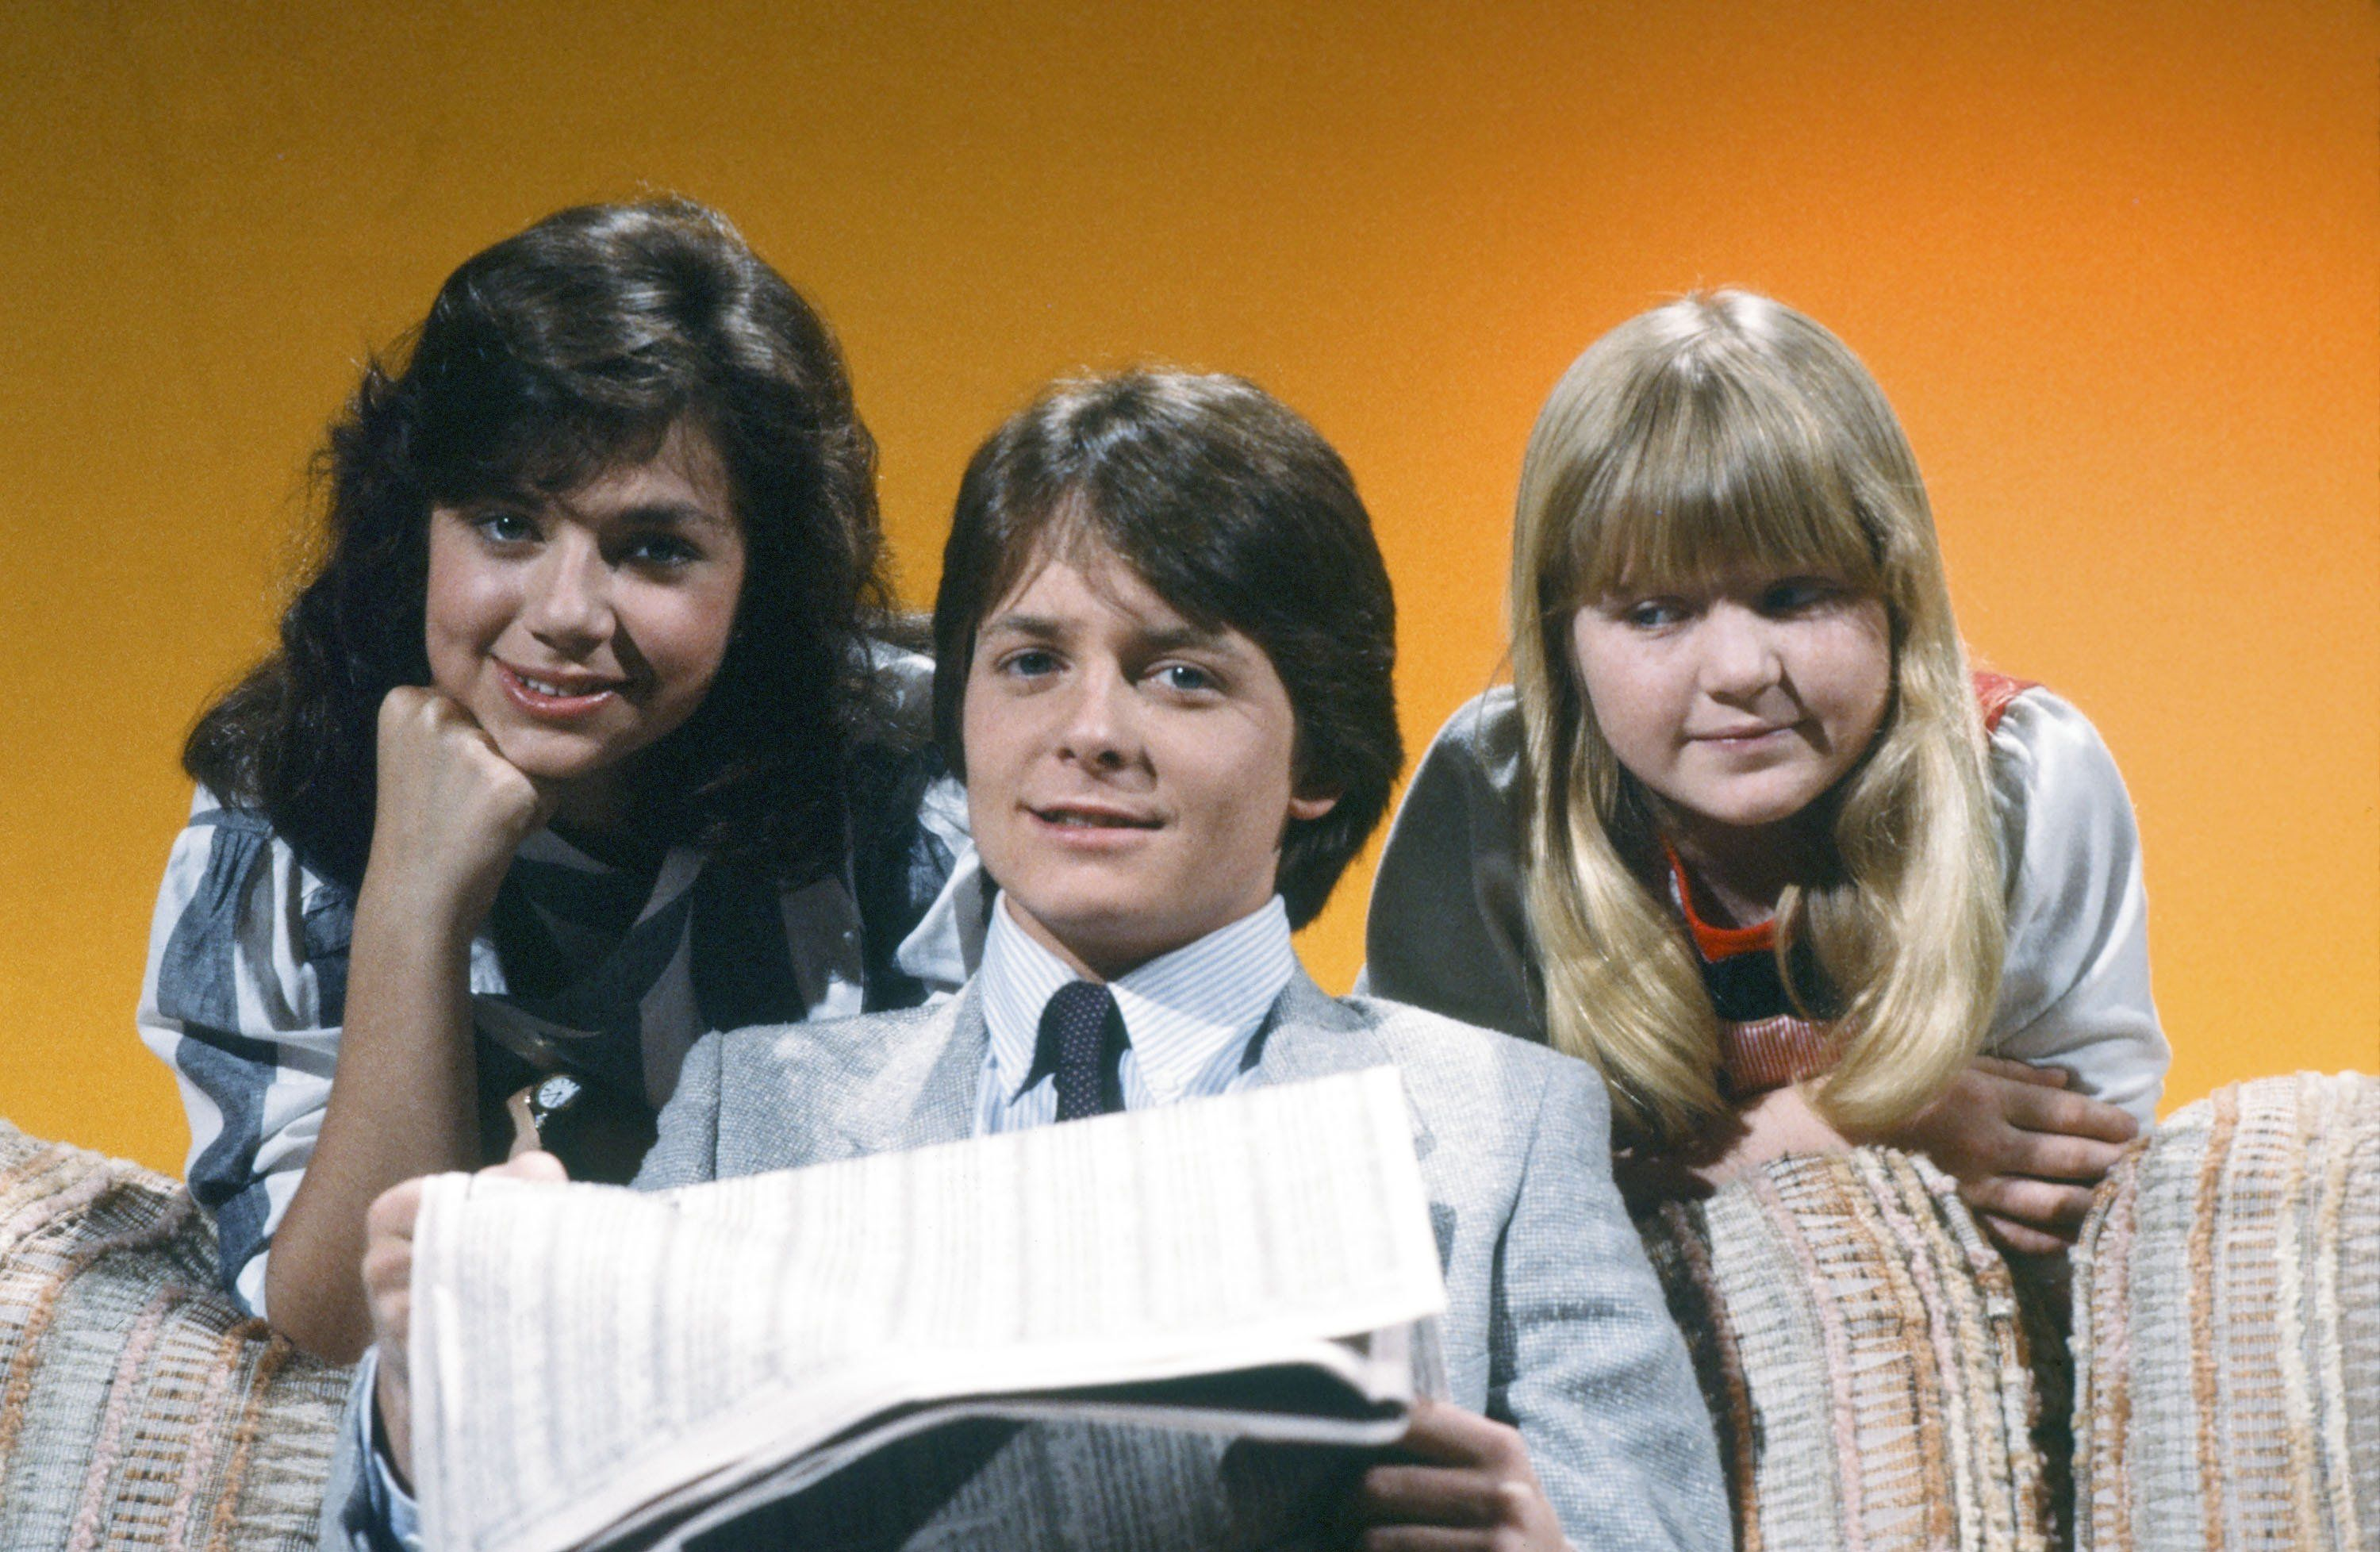 """From left, Justine Bateman, Michael J. Fox and Tina Yothers in a promotional photo for """"Family Ties,"""" which aired for seven s"""